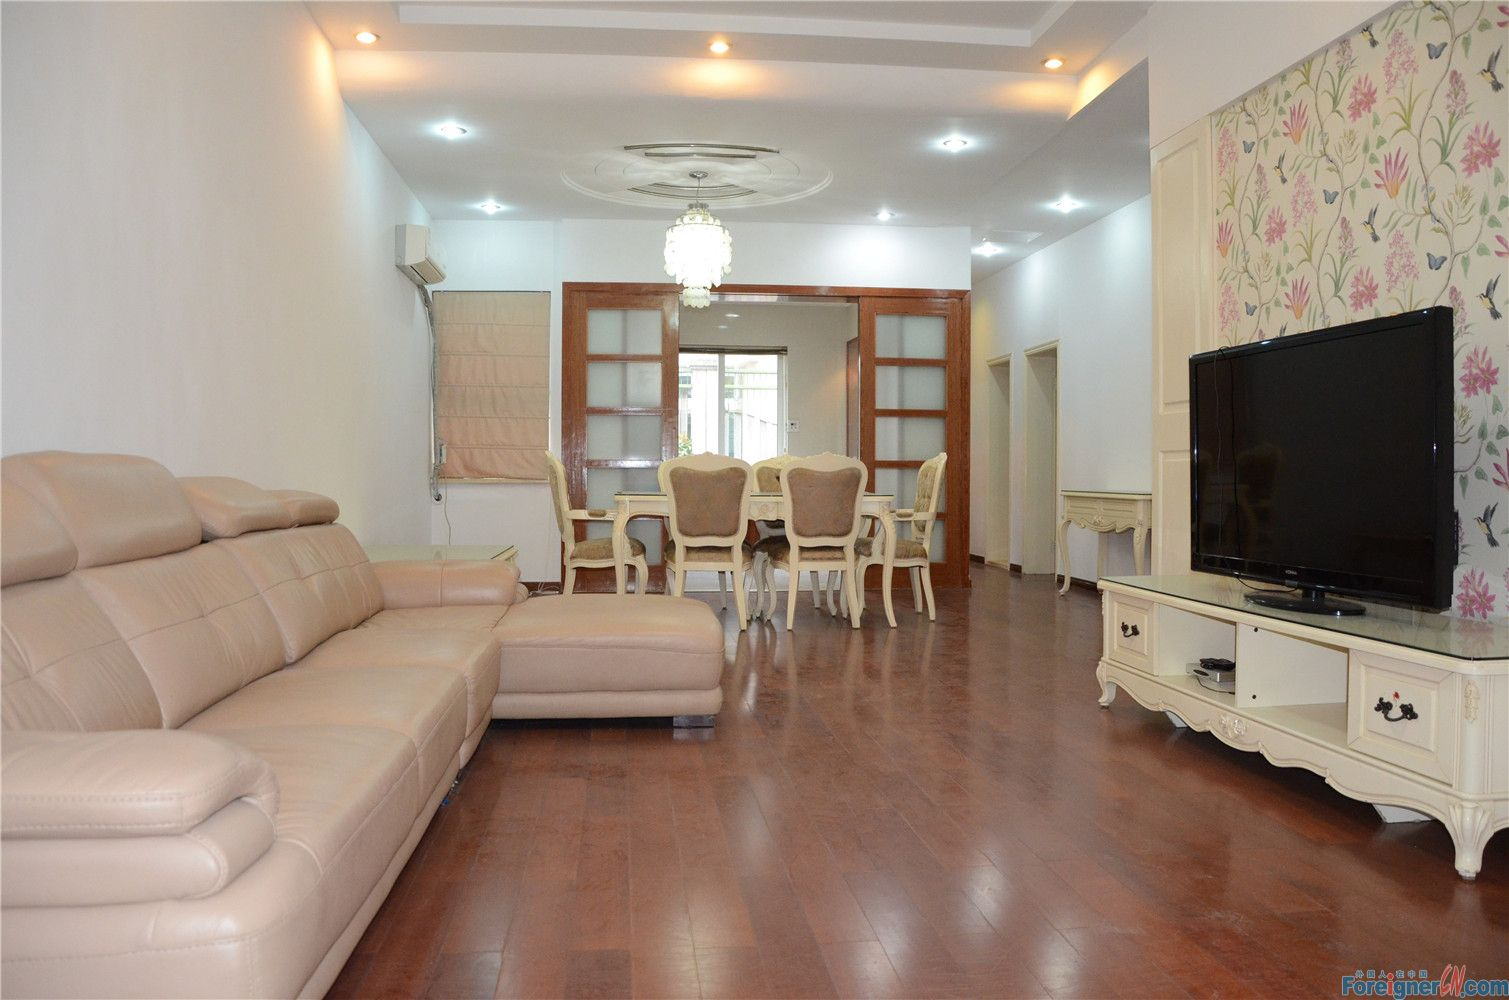 Casade esplanede / townhouse, 2storey/ low price /near xinghai square